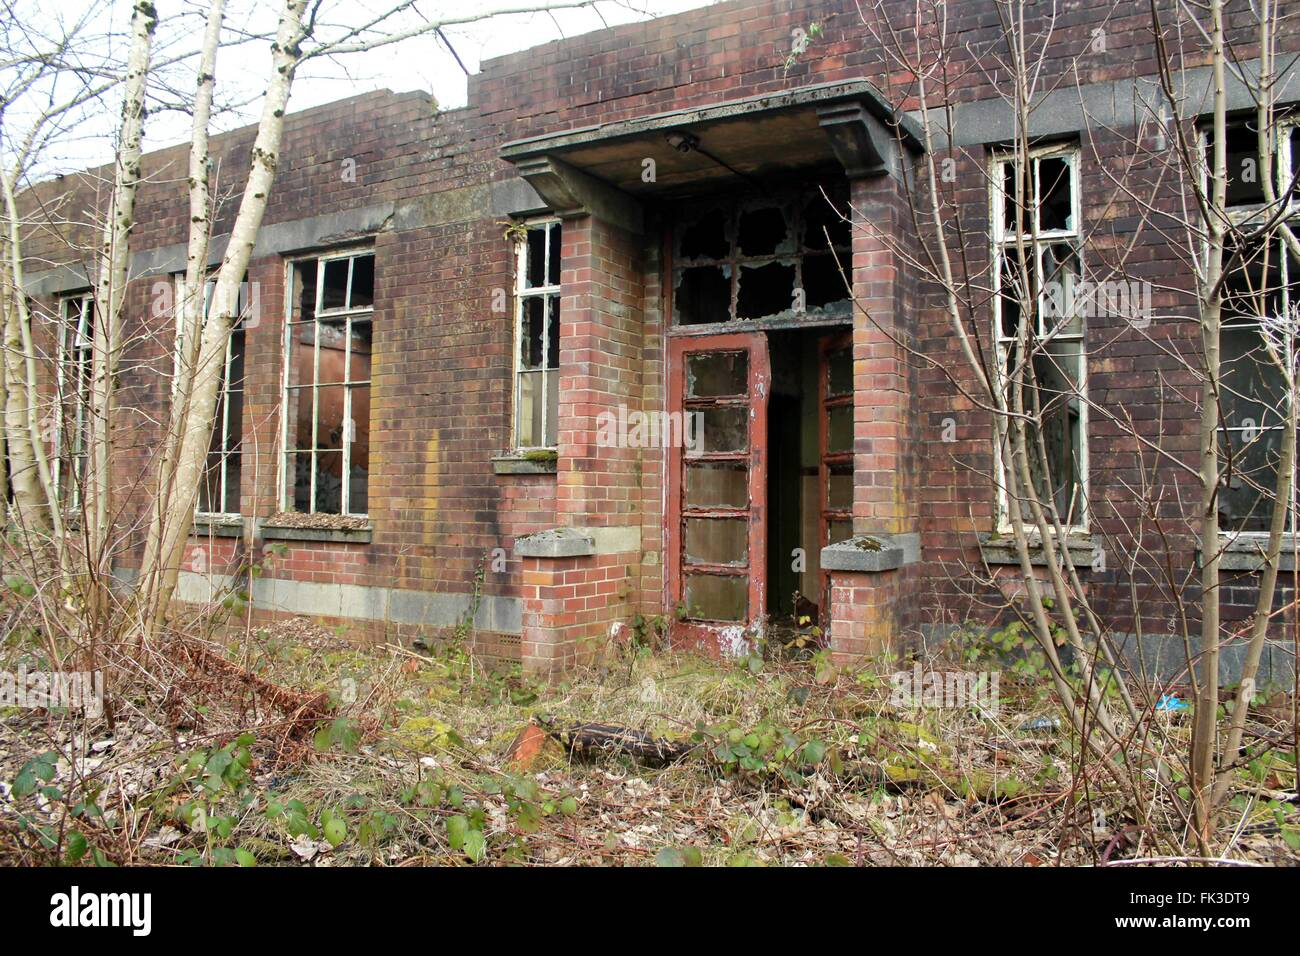 A creepy, abandoned building, warehouse, in the countryside, England - Stock Image